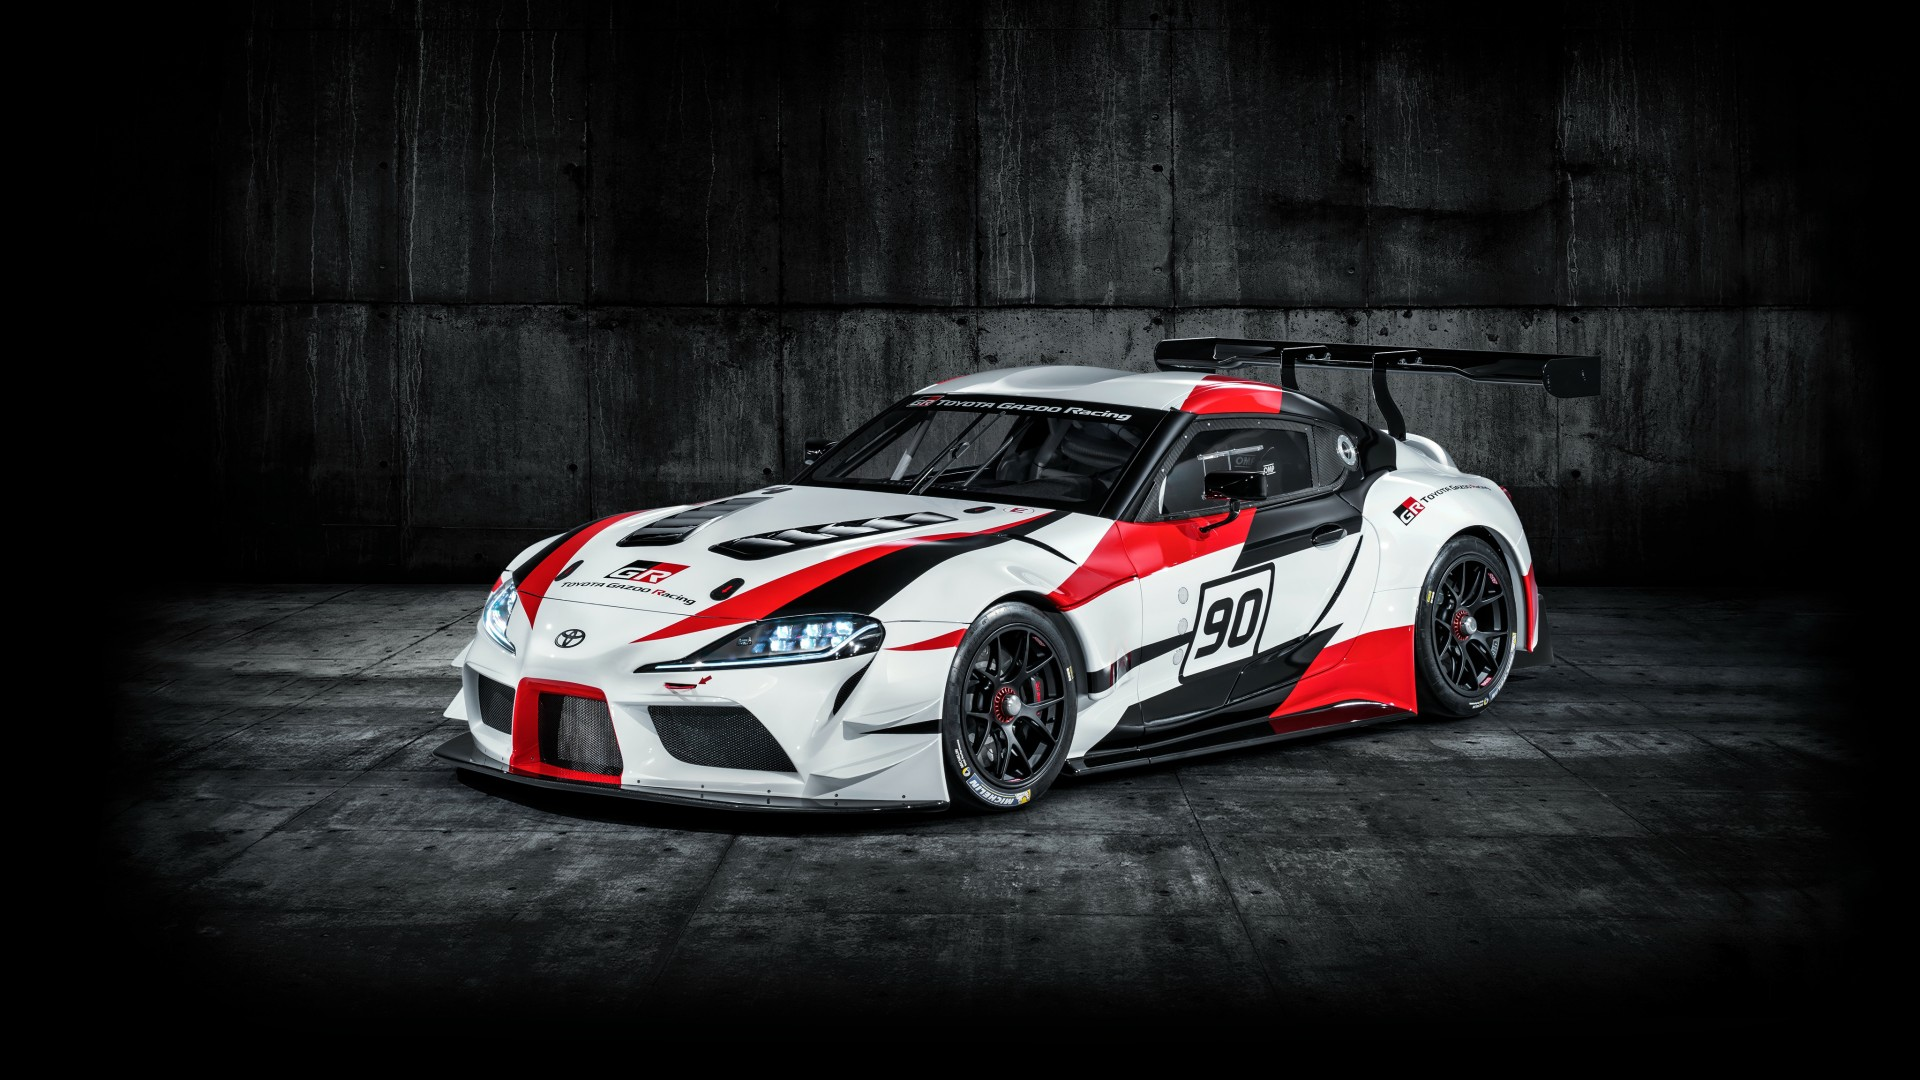 2018 Toyota GR Supra Racing Concept 4K 3 Wallpaper | HD ...